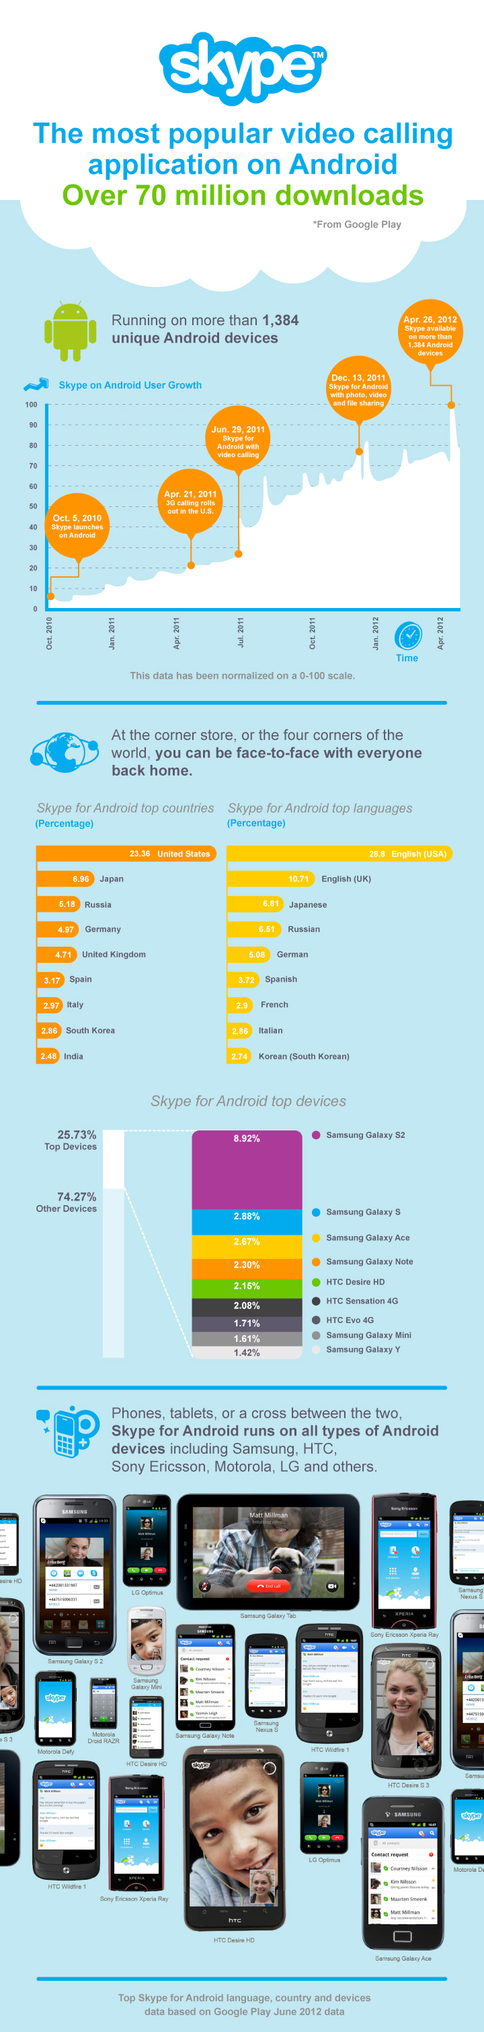 Skype Android - 70M downloads - The most popular video calling application on Android - More than 1300 devices